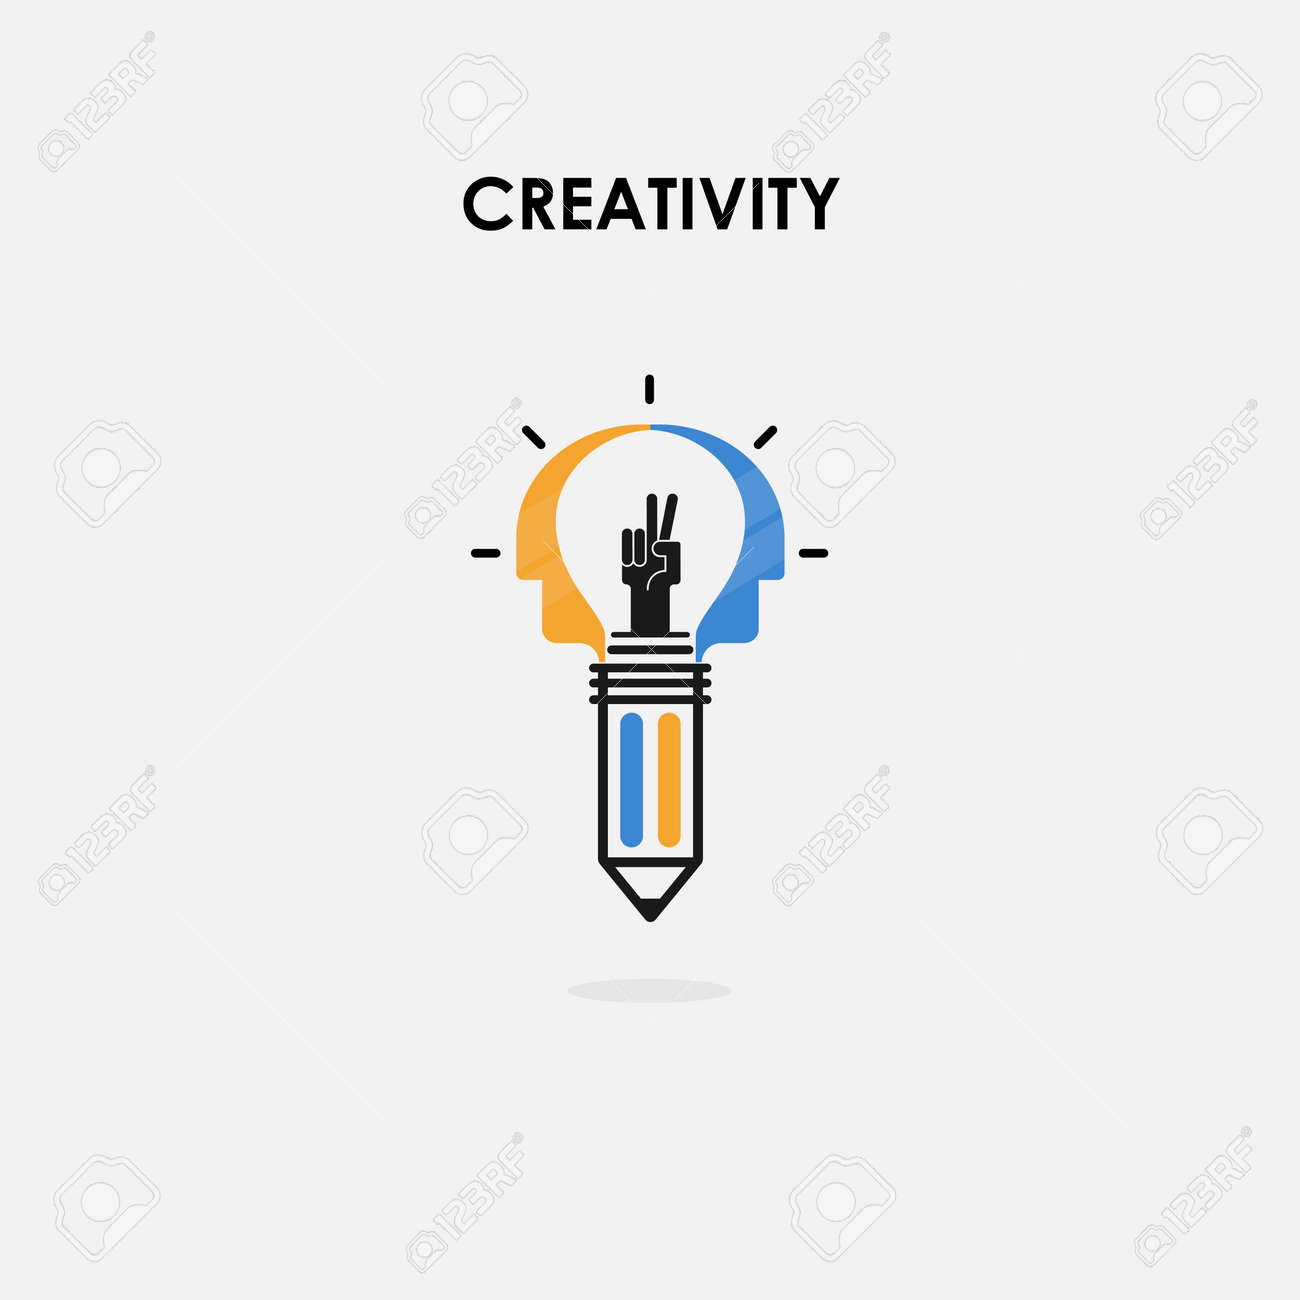 Creative Light Bulb And Success Concept Pencils And Human Heads Royalty Free Cliparts Vectors And Stock Illustration Image 90020297